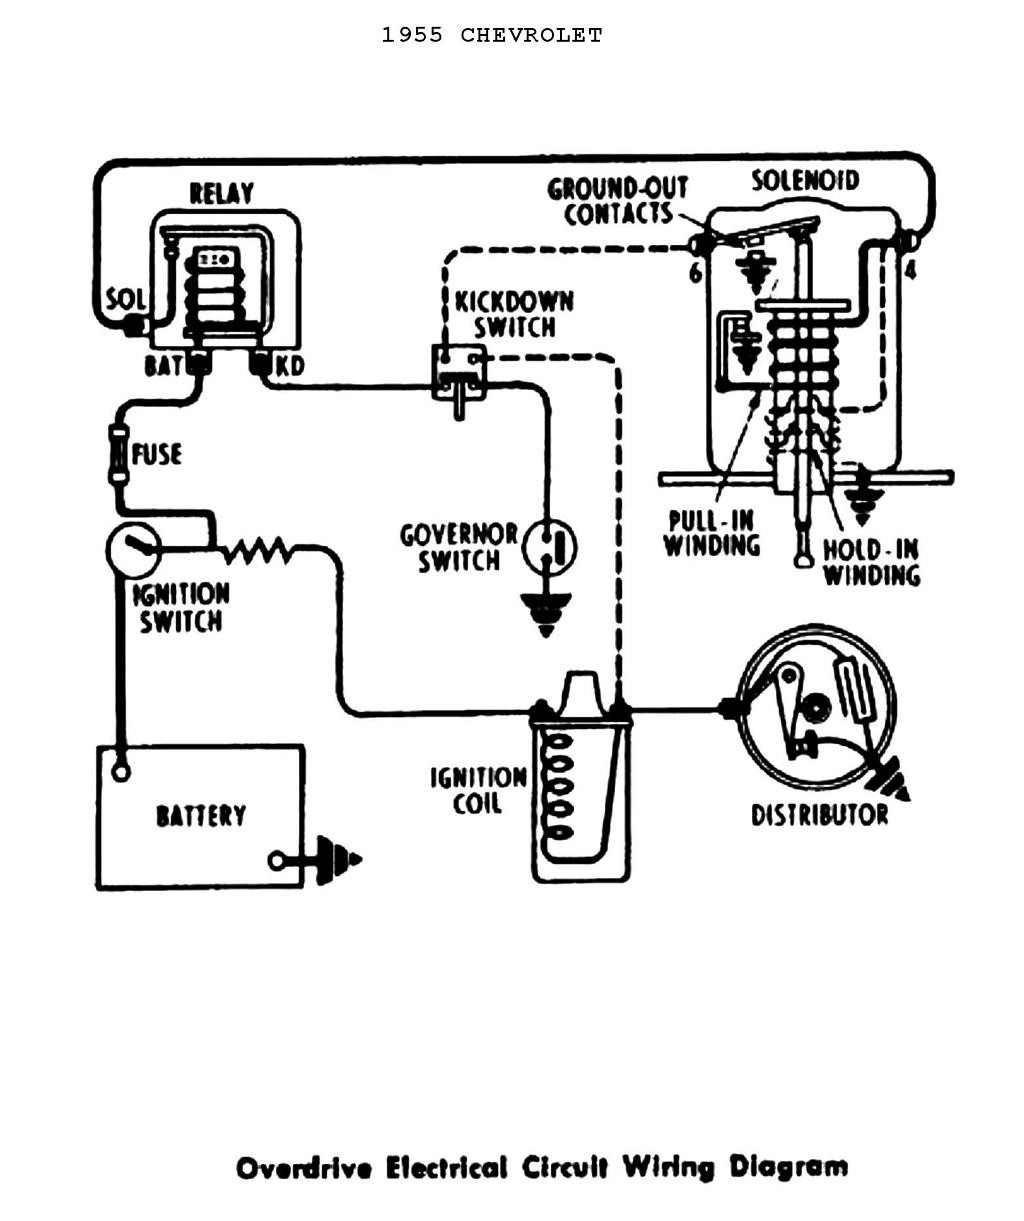 Gm Coil Wiring Diagram | Wiring Diagrams Fate loot | Chevy 350 Distributor Wiring Diagram |  | wiring diagram library